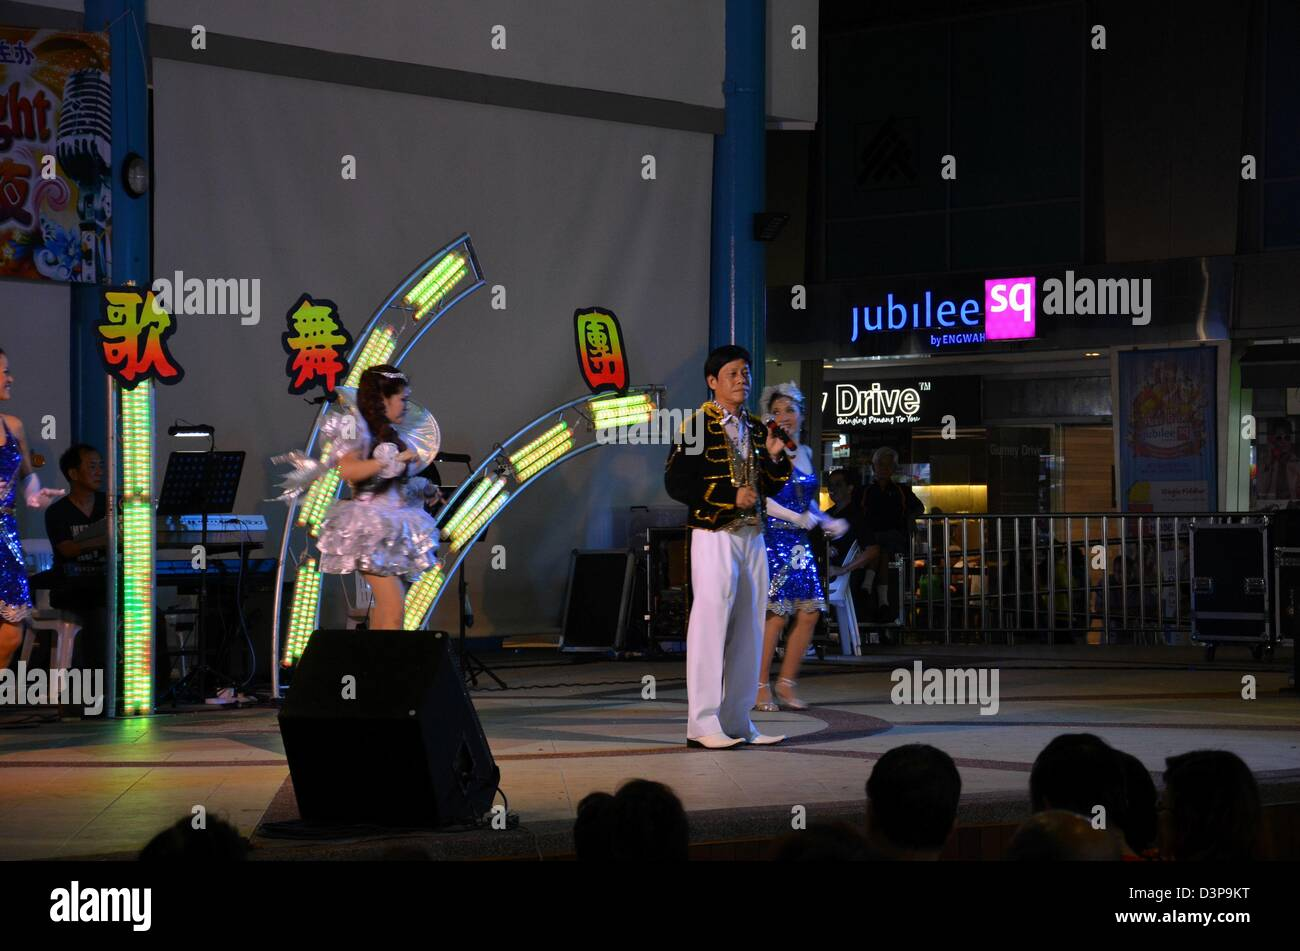 Performers at Singapore community events - Stock Image